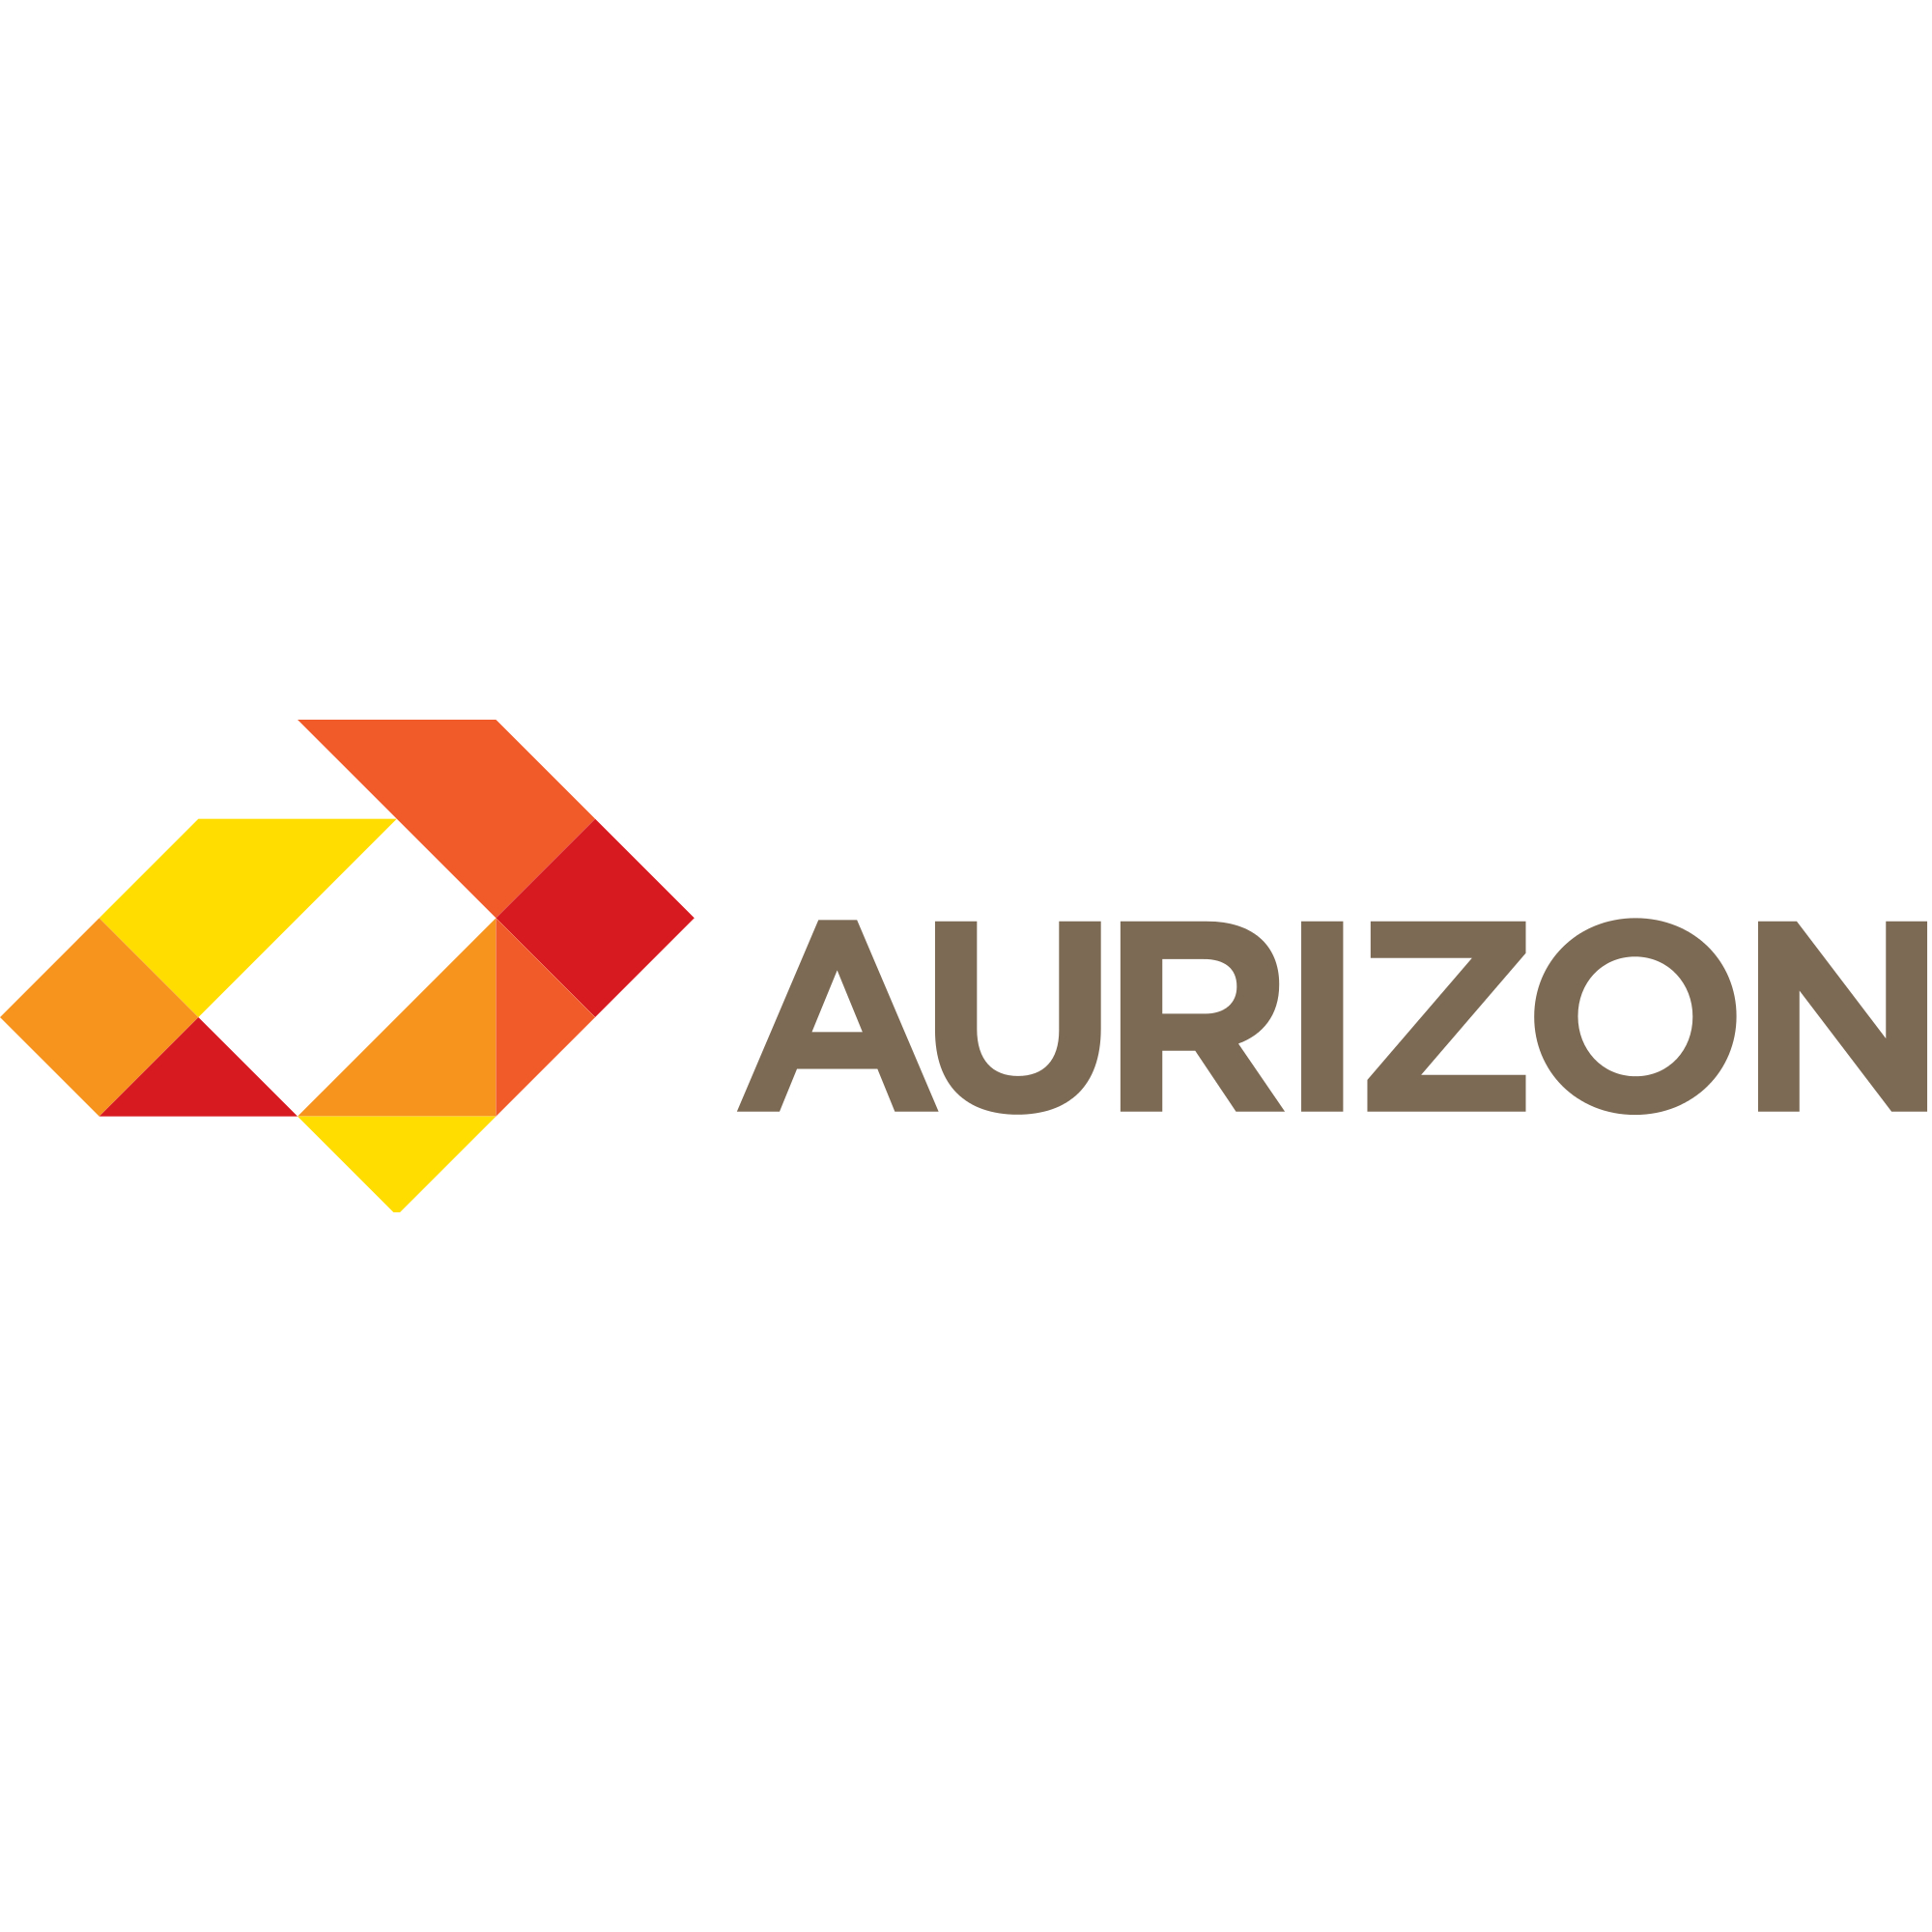 https://freightquip.com/production/wp-content/uploads/2020/07/Aurizon-Logo.jpg